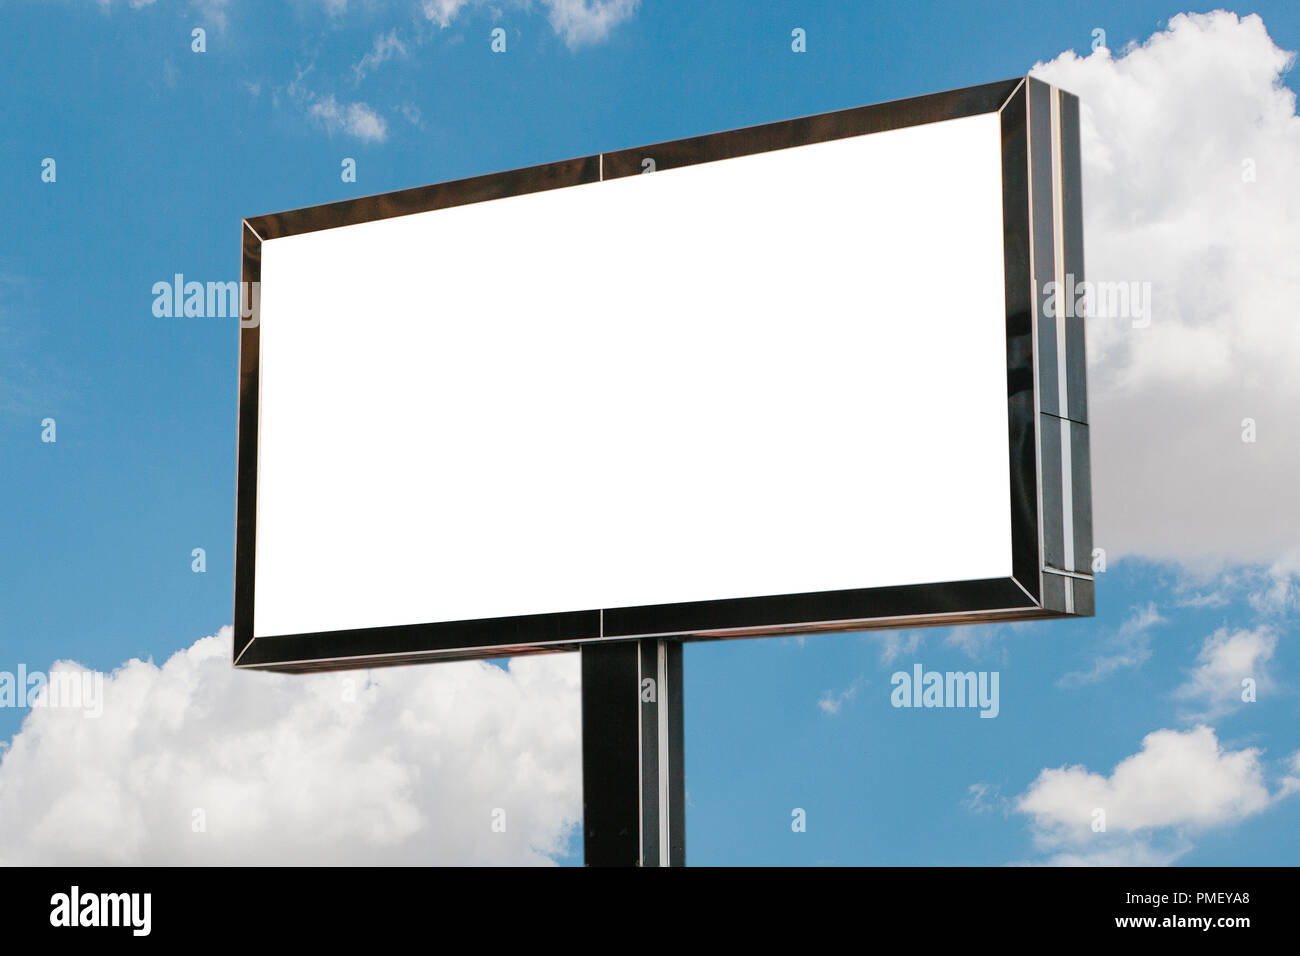 An empty billboard for advertising against the blue sky. - Stock Image